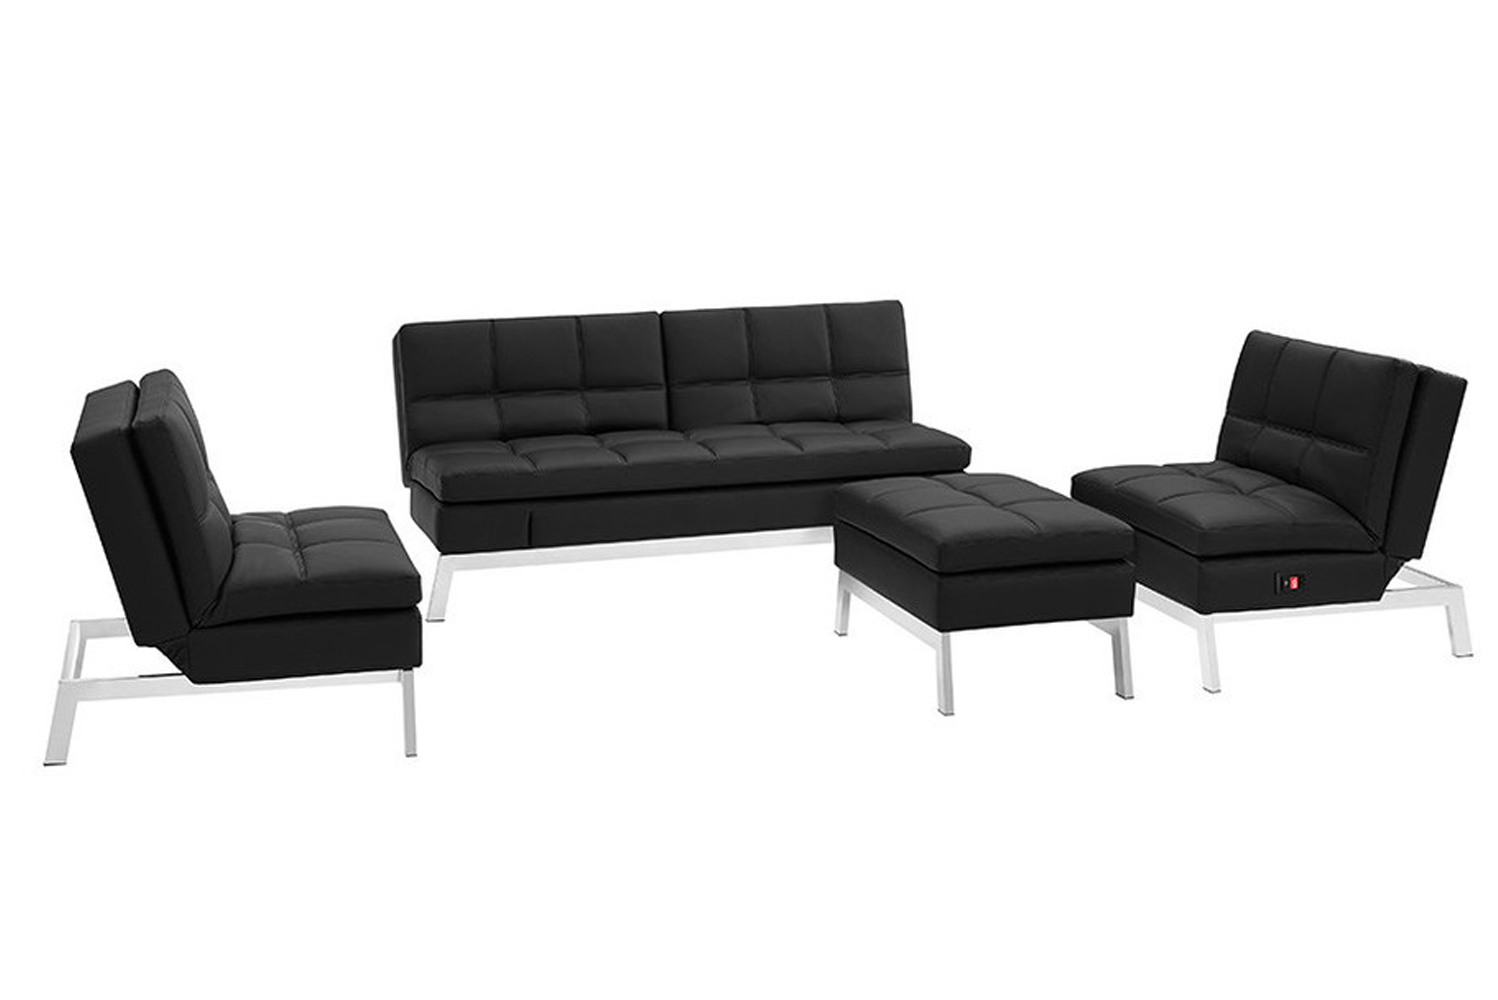 The couch can be transformed from a place to watch television, and to a bed that can sleep two.